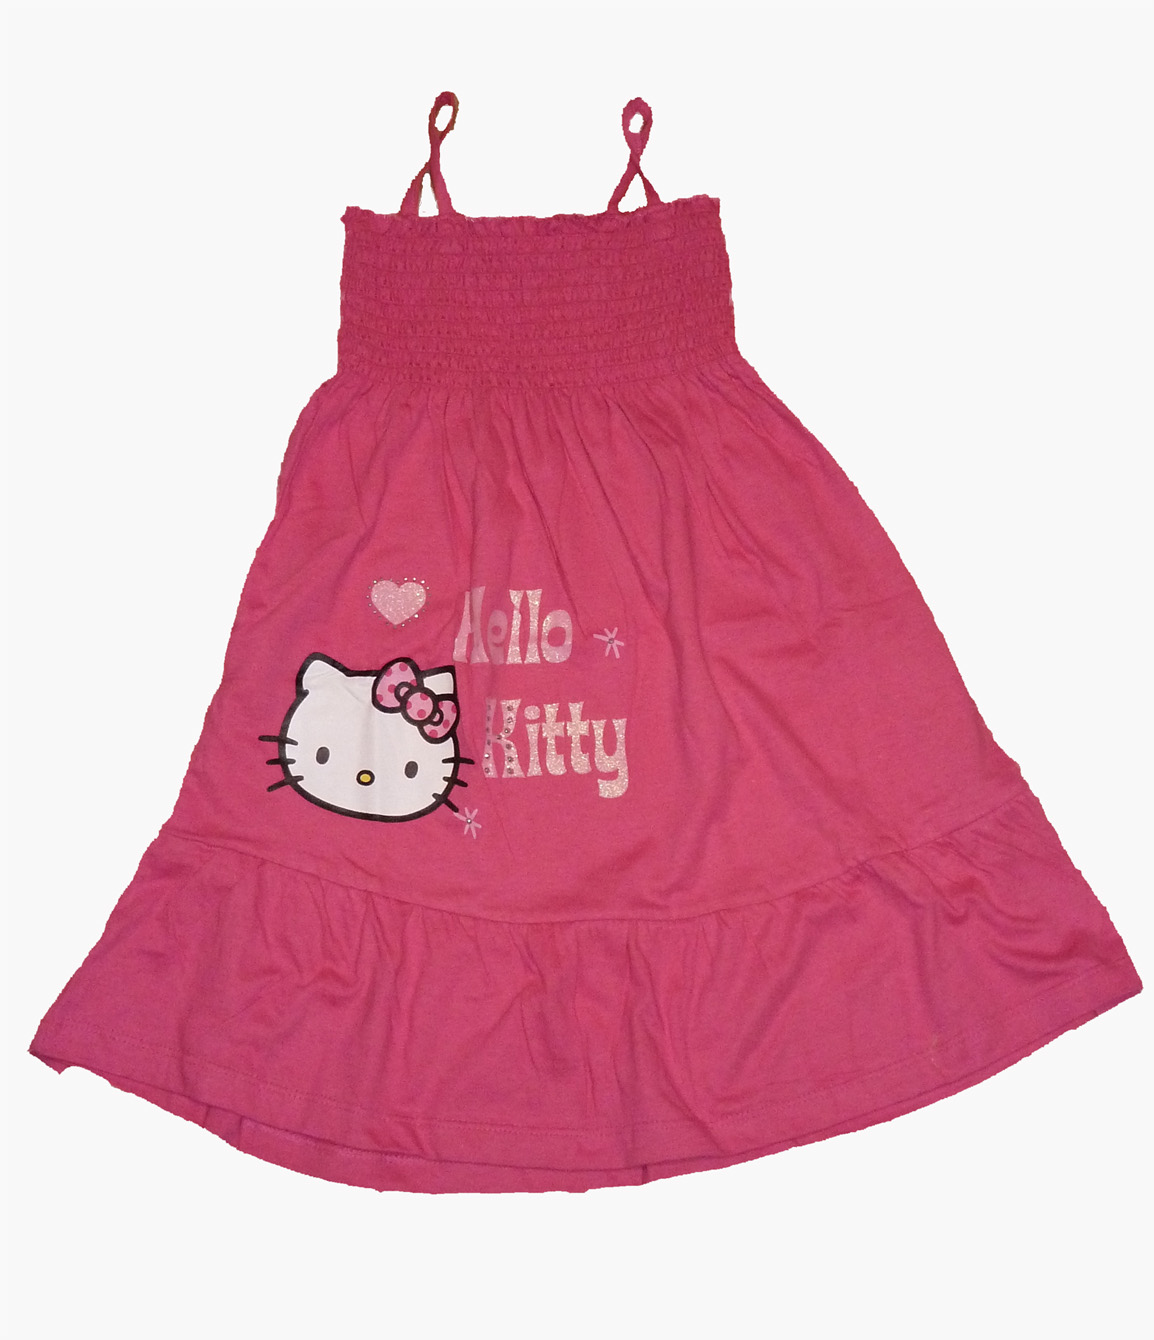 Hello Kitty Sundress - Pink